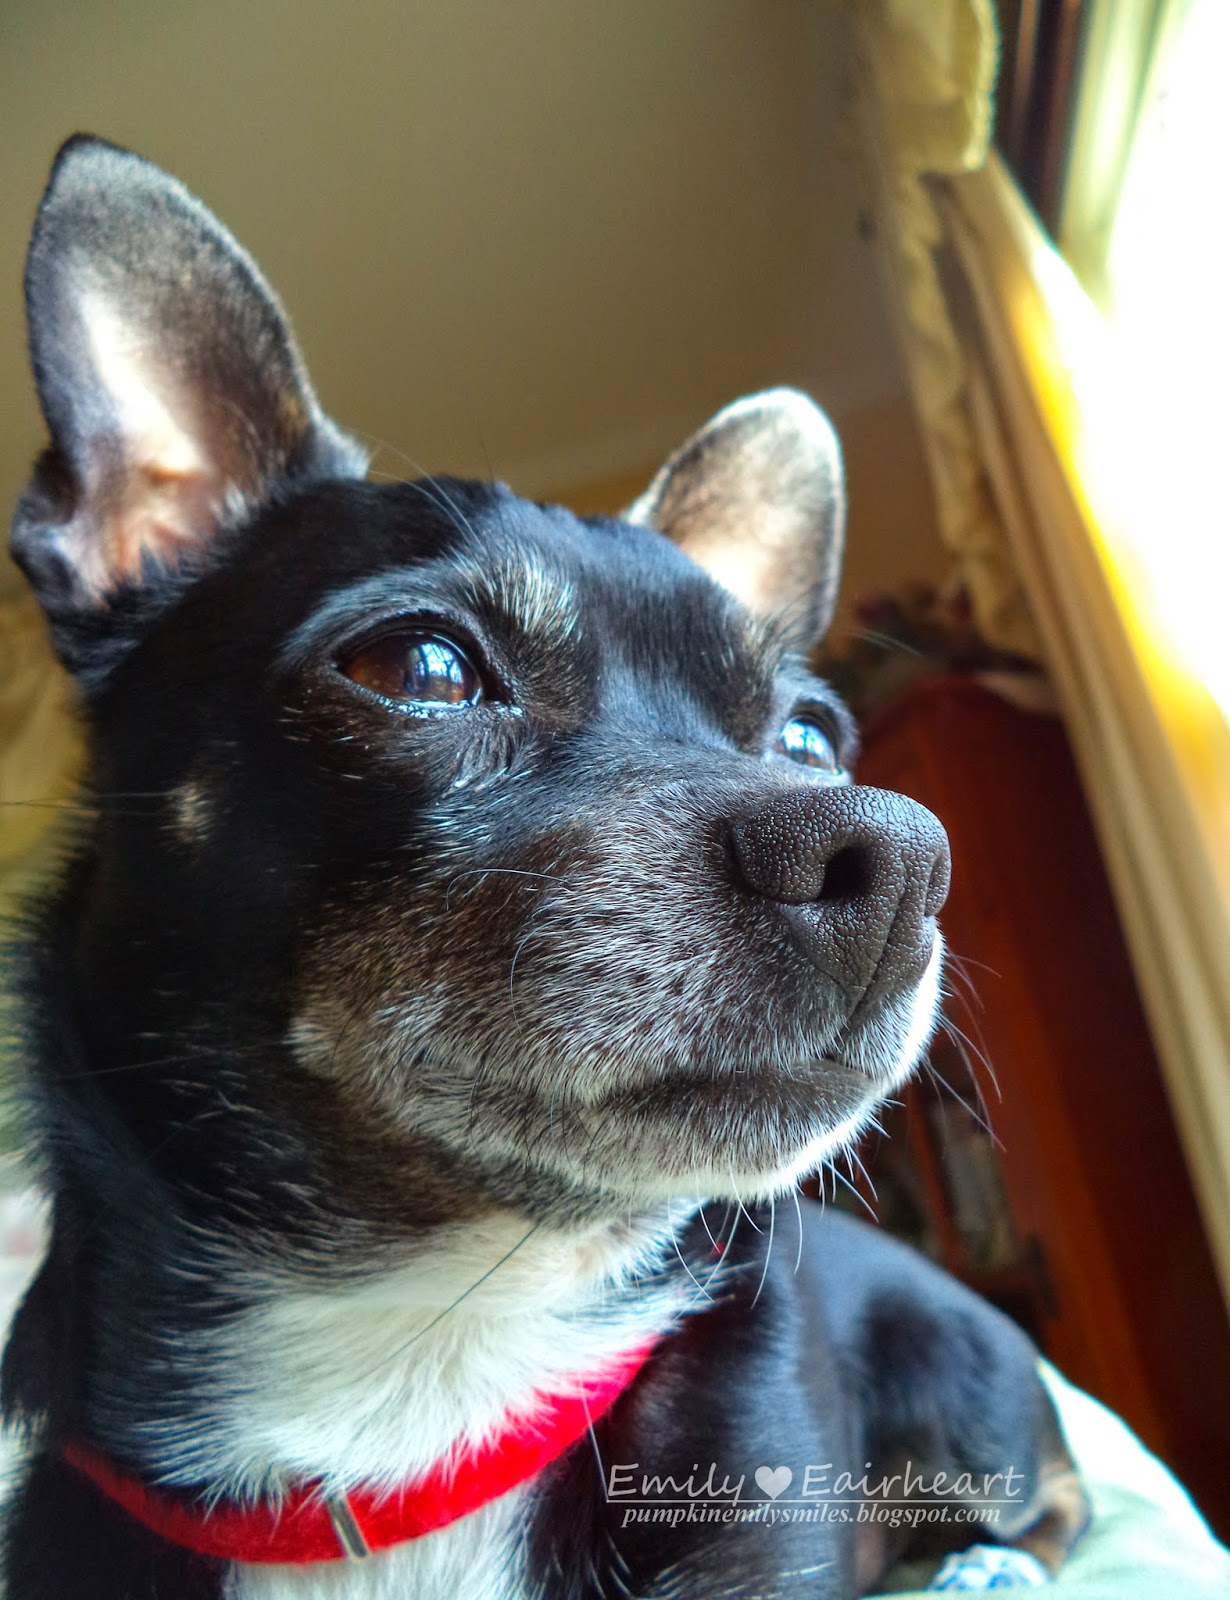 Minnie, Chihuahua, sitting on top of couch watching for enemies.